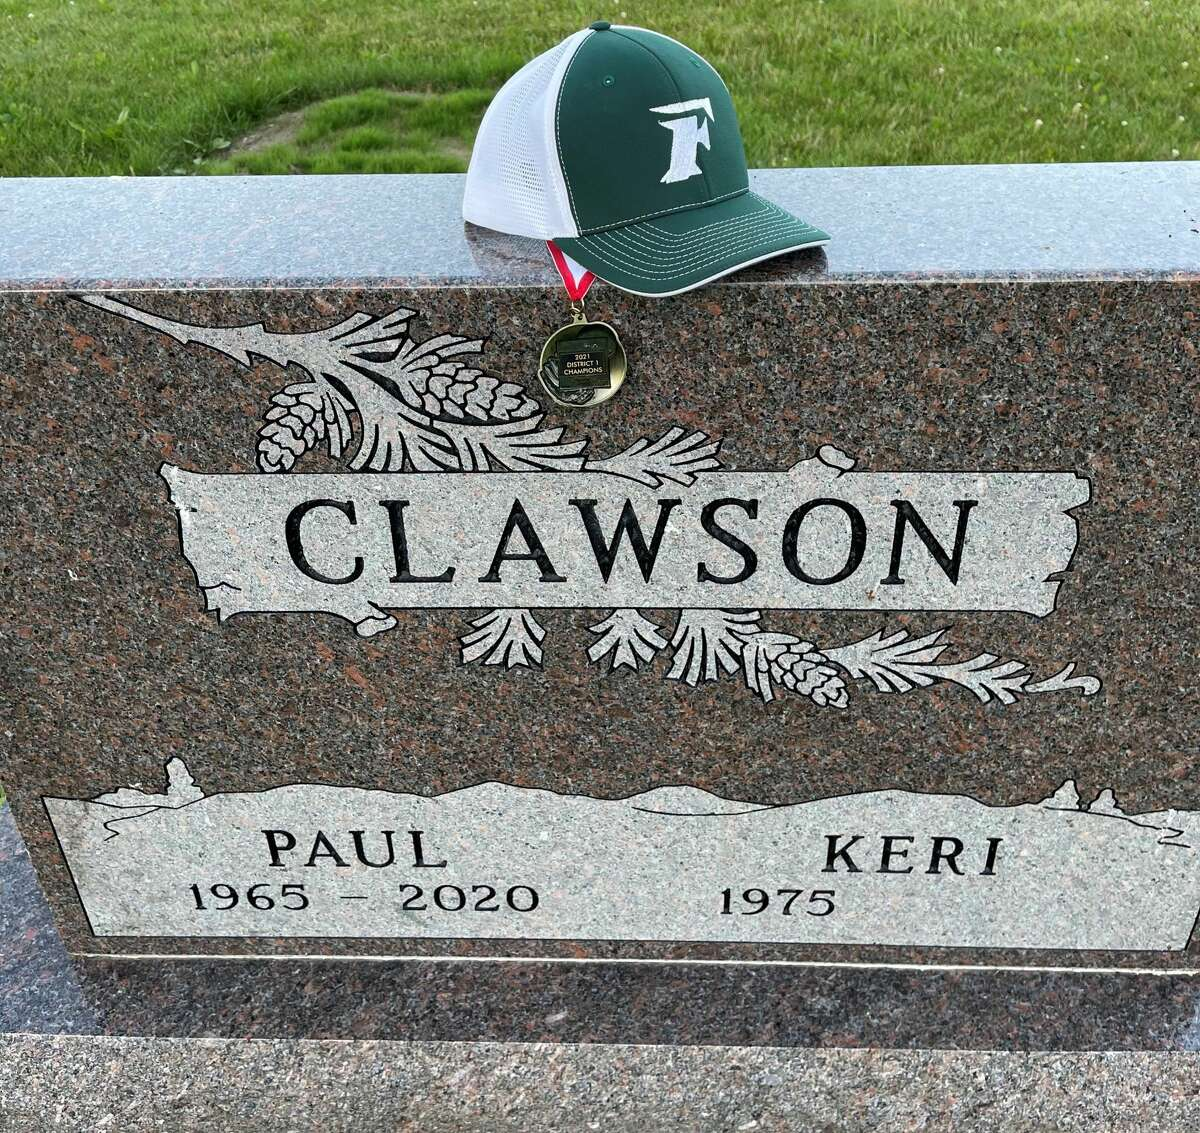 Jacob Clawson's hat and district championship medal are seen on the head stone of his father Paul's grave site.